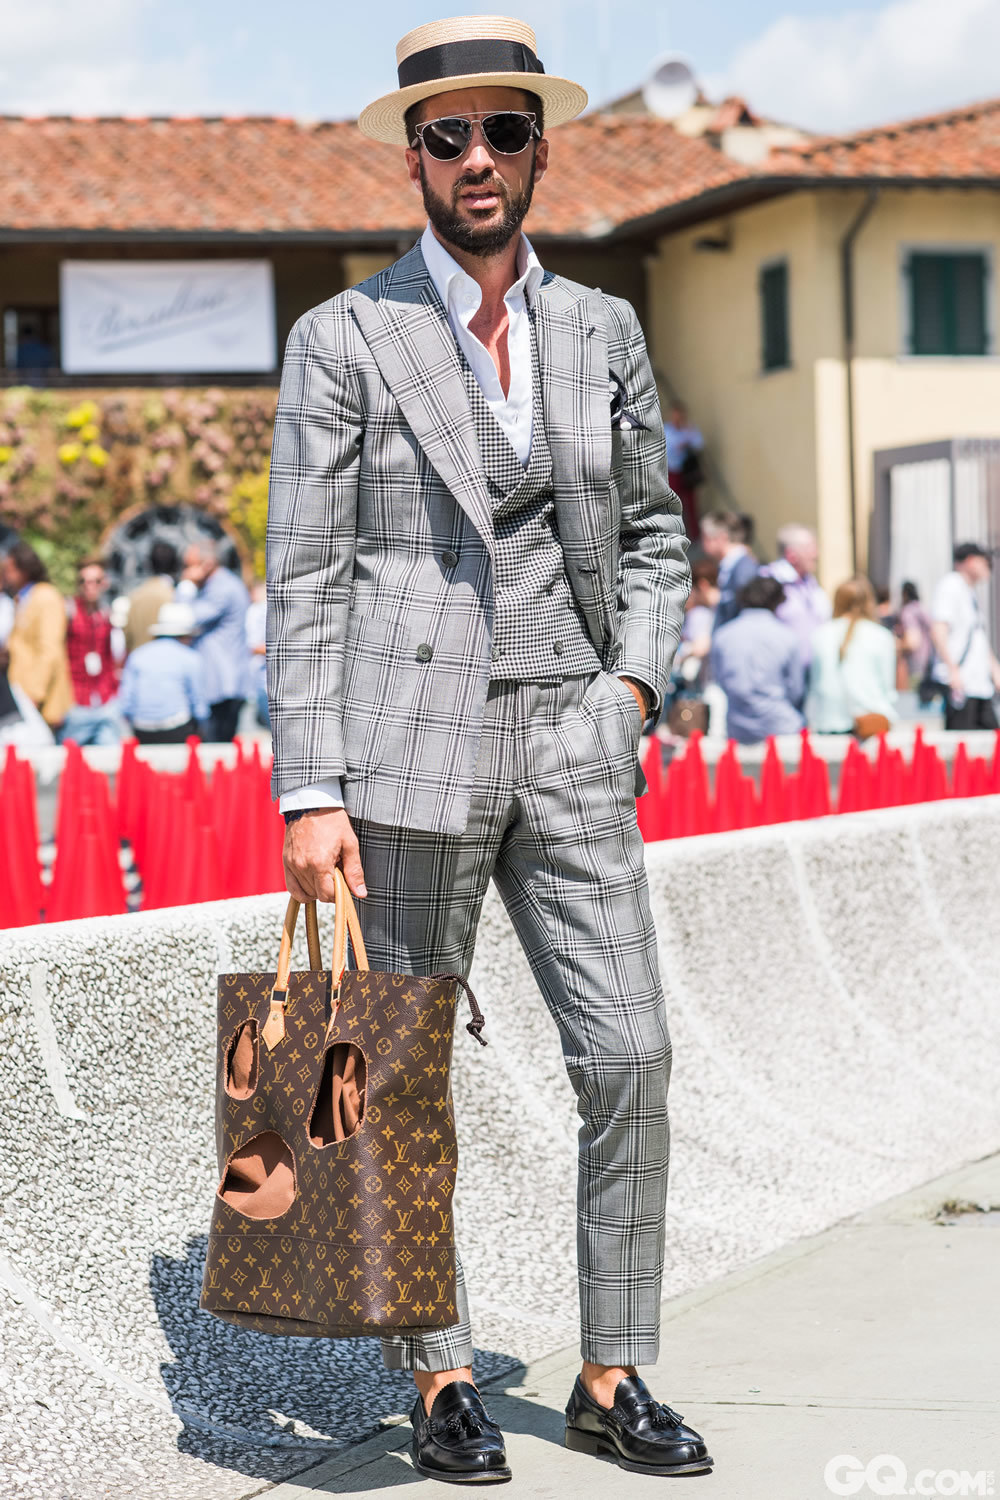 "Raoul Hat: Borsalino Sunglasses: Dior Shirt: made to mesure Suit: Sartoria Napolitana Shoes: Church Pocket square: Tom Ford Bag: Louis Vuitton  Inspiration: I was in a plaid state of mind this morning! (我今天的状态就是""格子""!)"